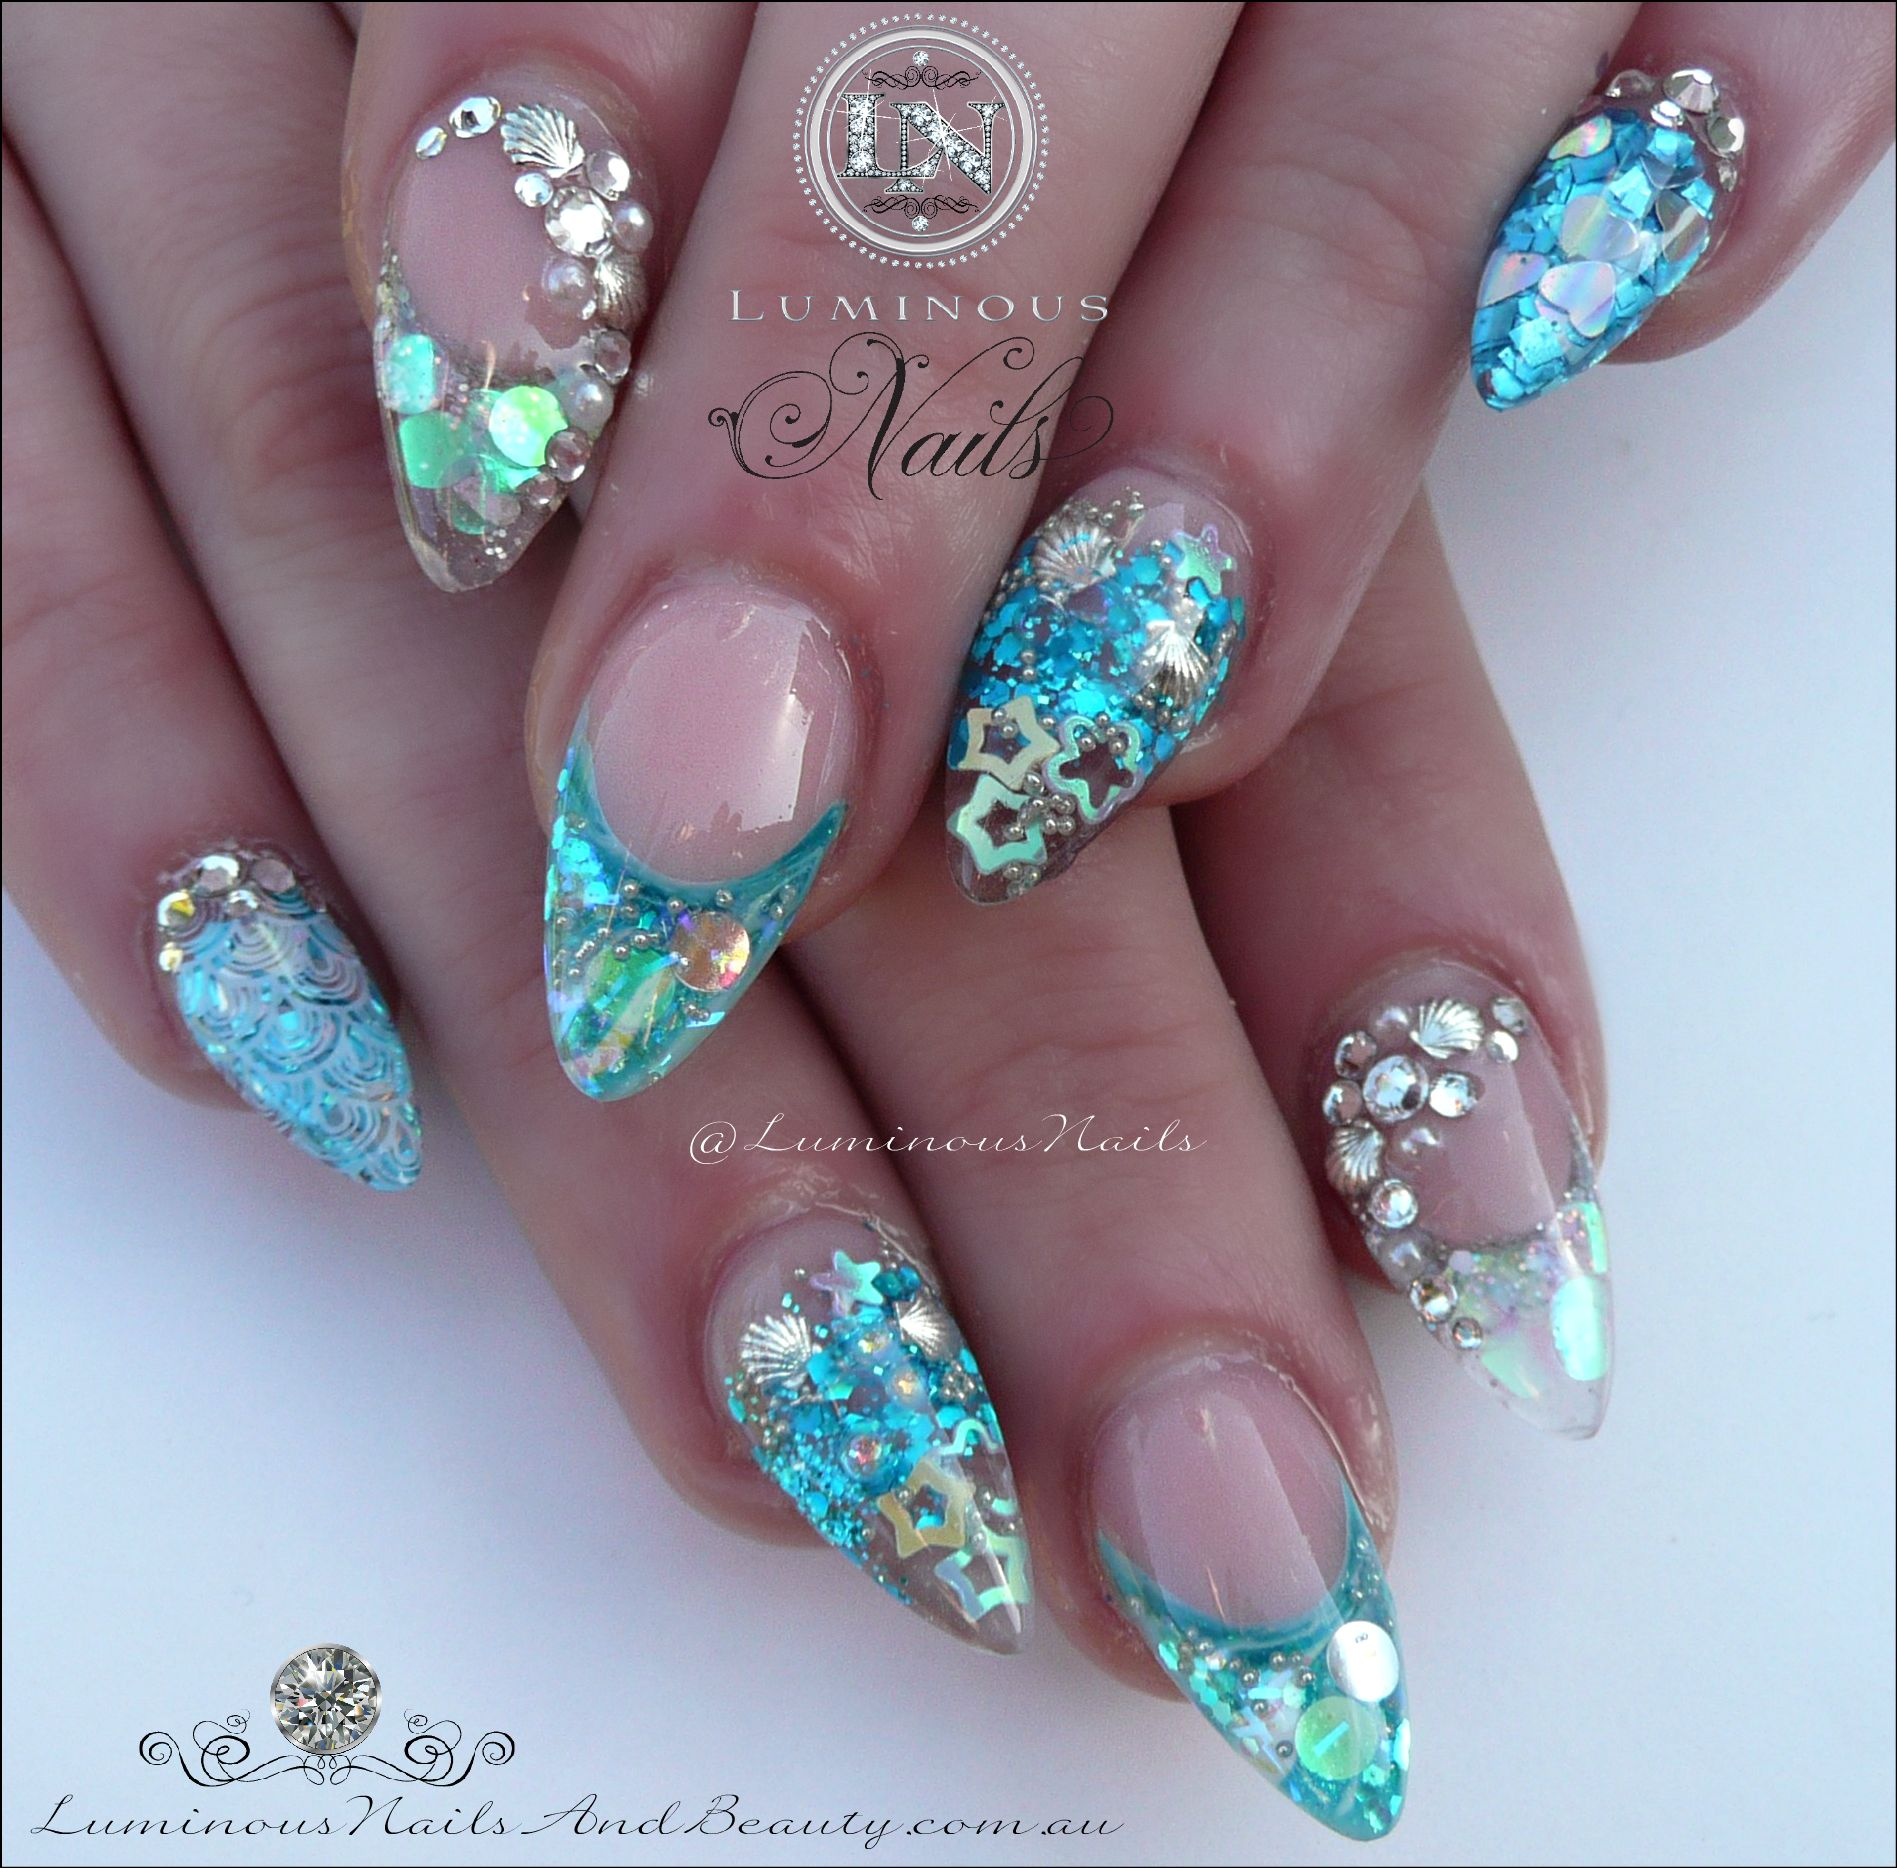 Blue glitter ombr 233 stiletto nails - Sculptured Acrylic With Glitter Heaven Heart Of The Ocean Glitter Silver Fine Chunky Blazin Nails Rapids Glit